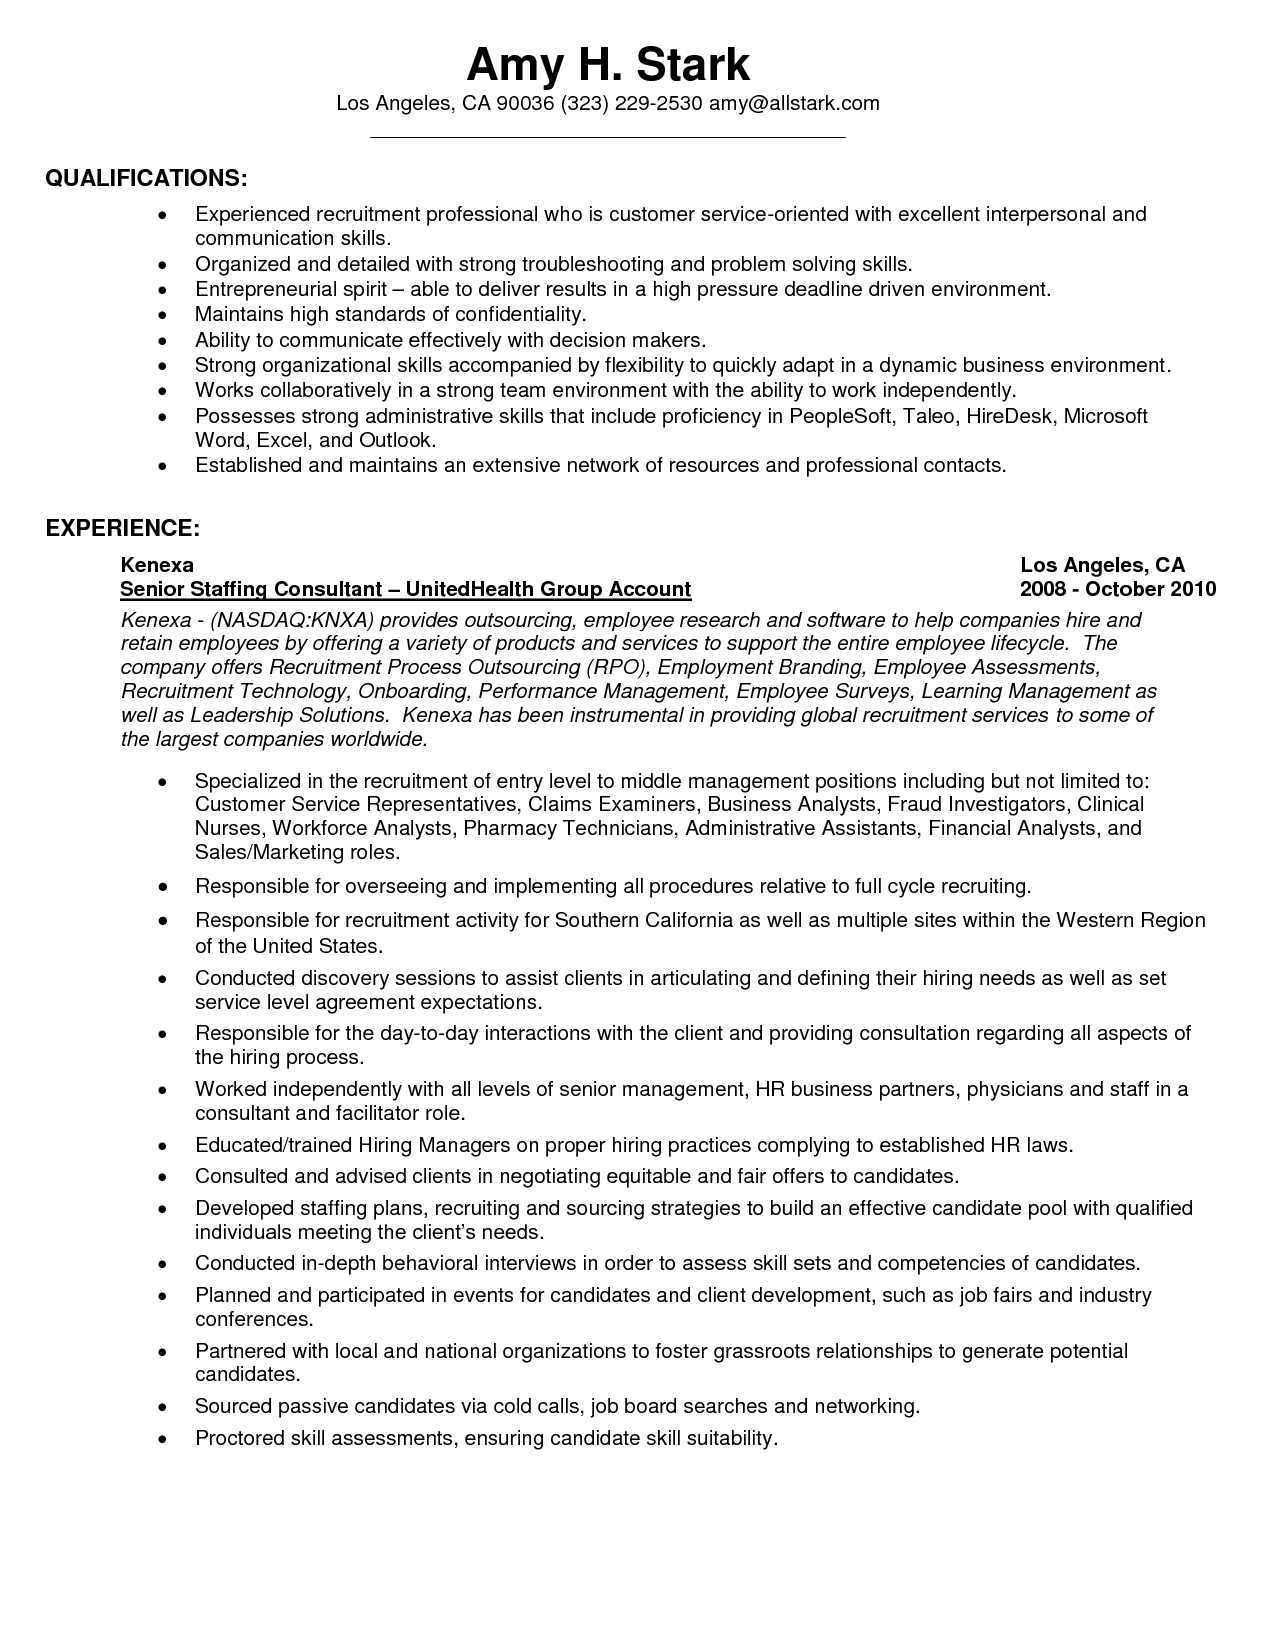 Excellent Customer Service Skills Resume  Sample Resume Center